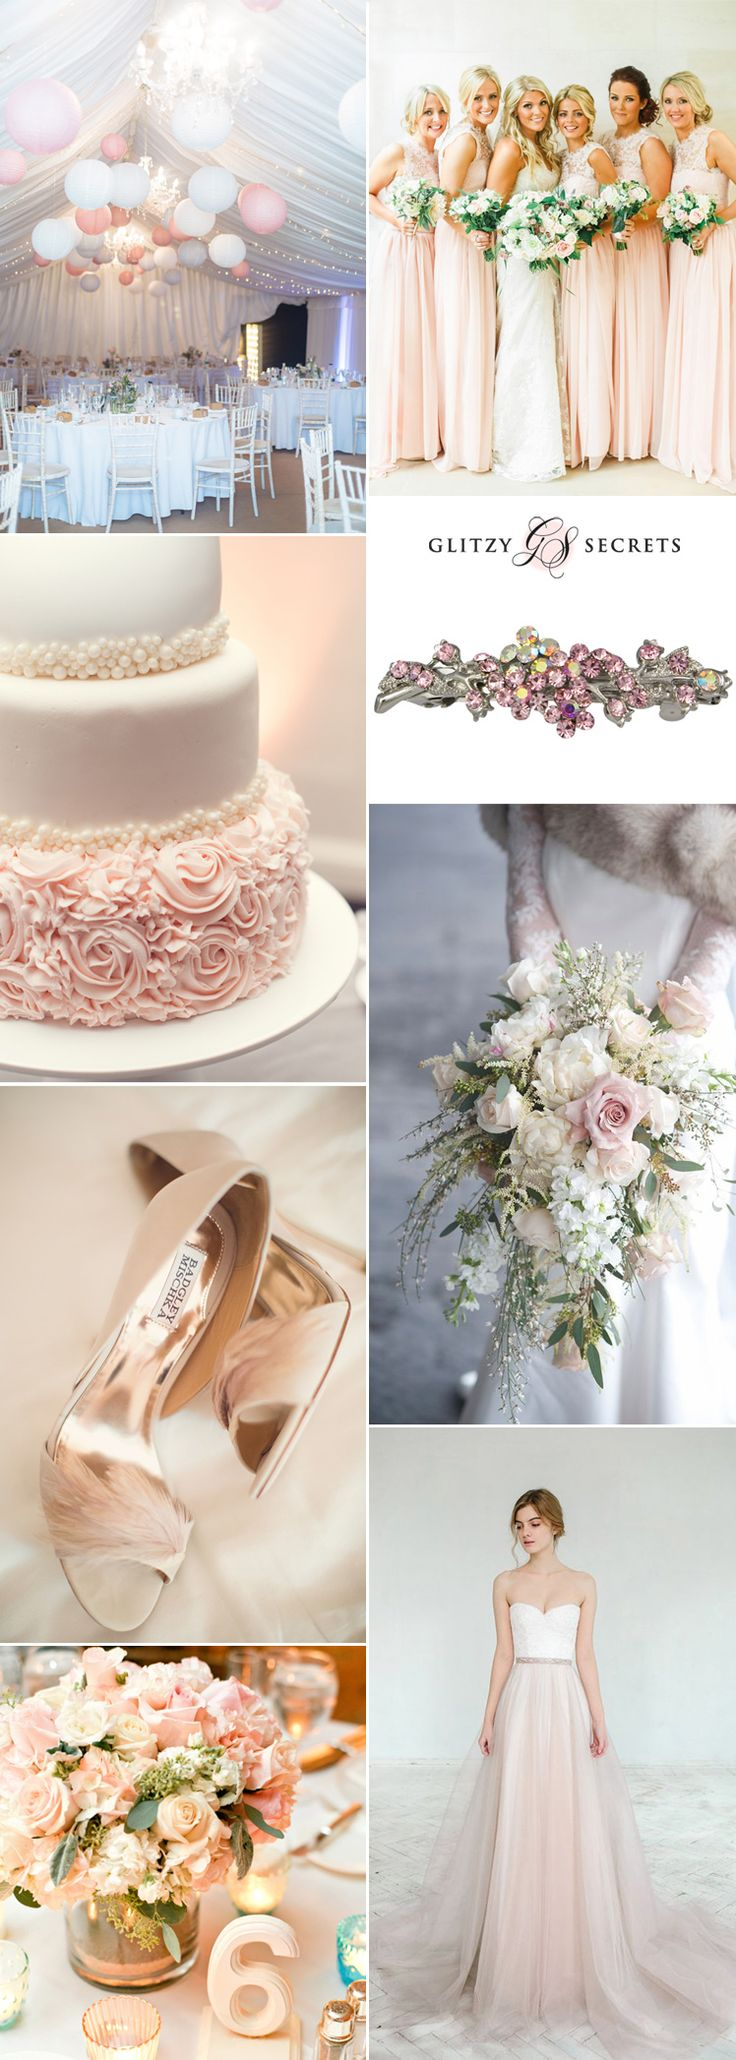 Beautifully elegant and oh so pretty, a blush and ivory wedding theme is simply divine. Ivory is a wedding staple that suits all seasons, while blush has been incredible popular in the wedding world lately, and will give you a soft pop of feminine color